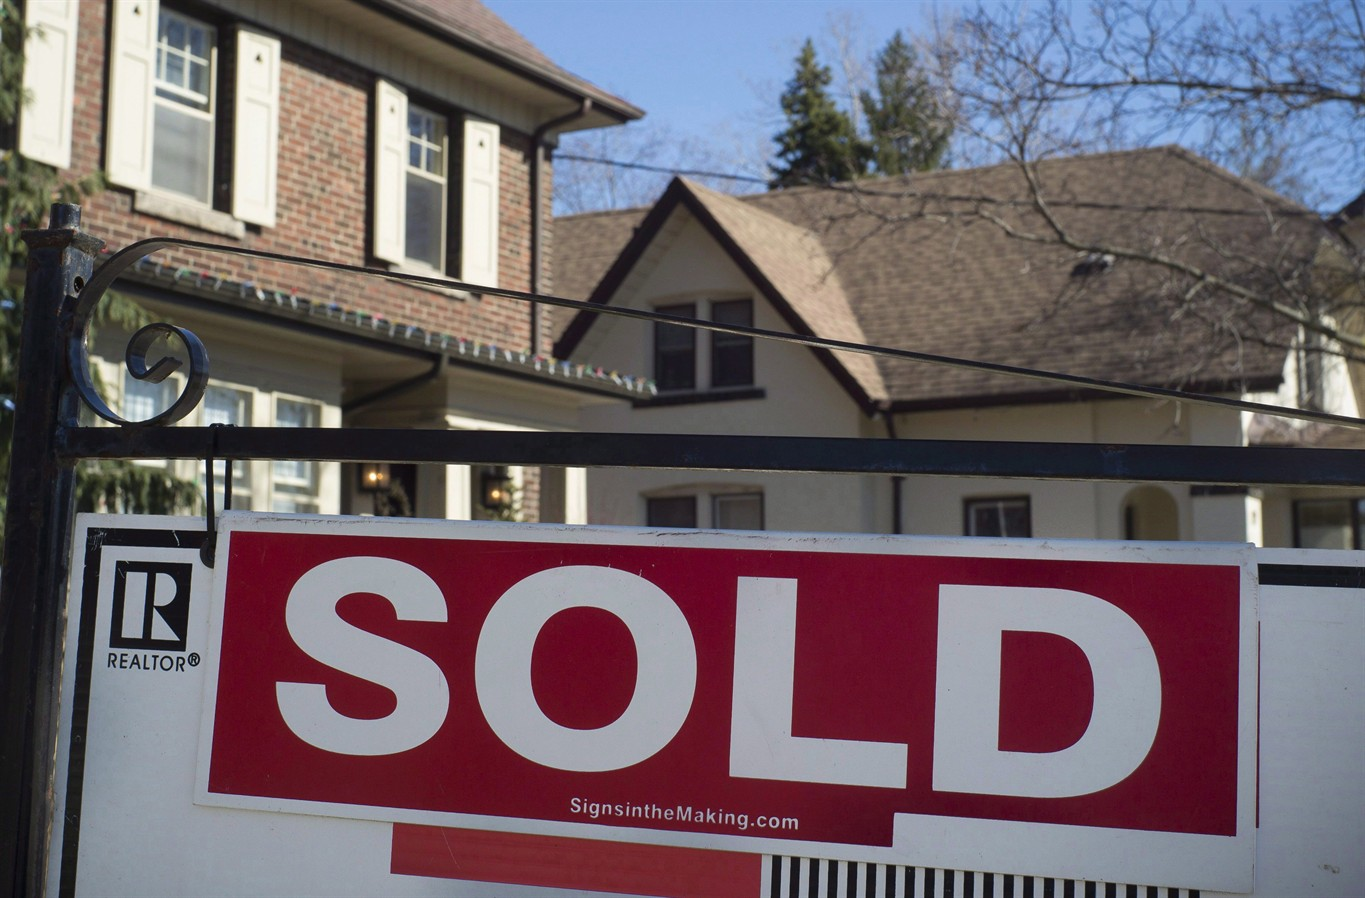 toronto home sales for 2017 down from 2016, average price up